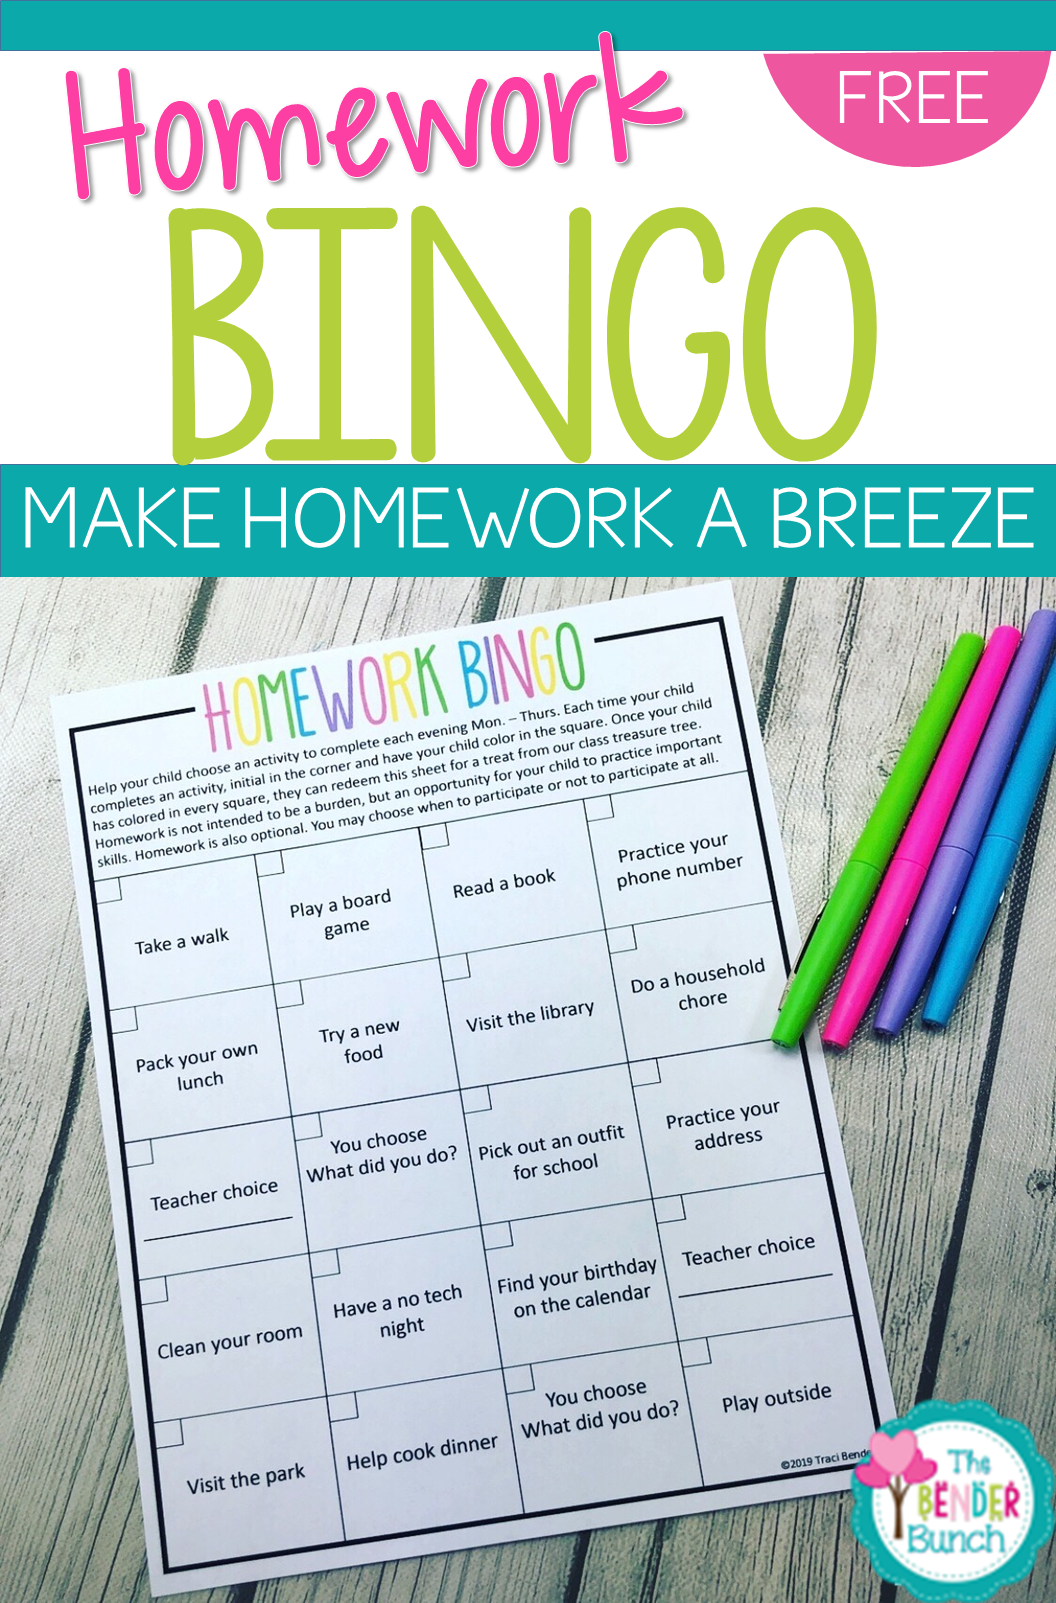 Homework Bingo Editable Freebie